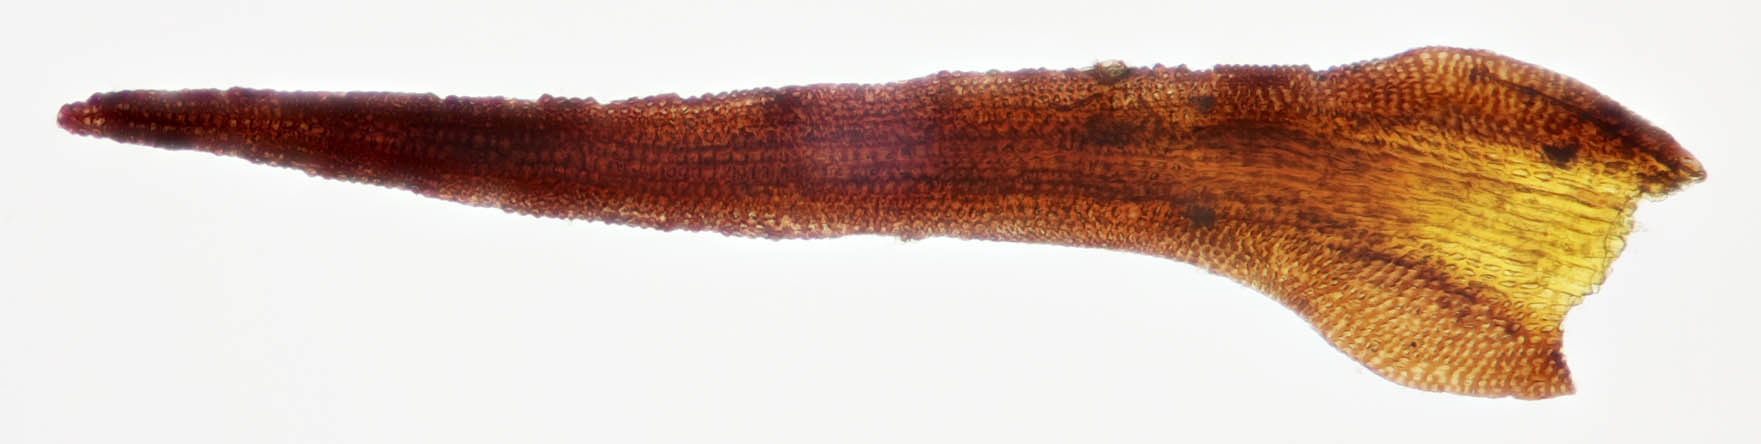 Image of Roth's andreaea moss